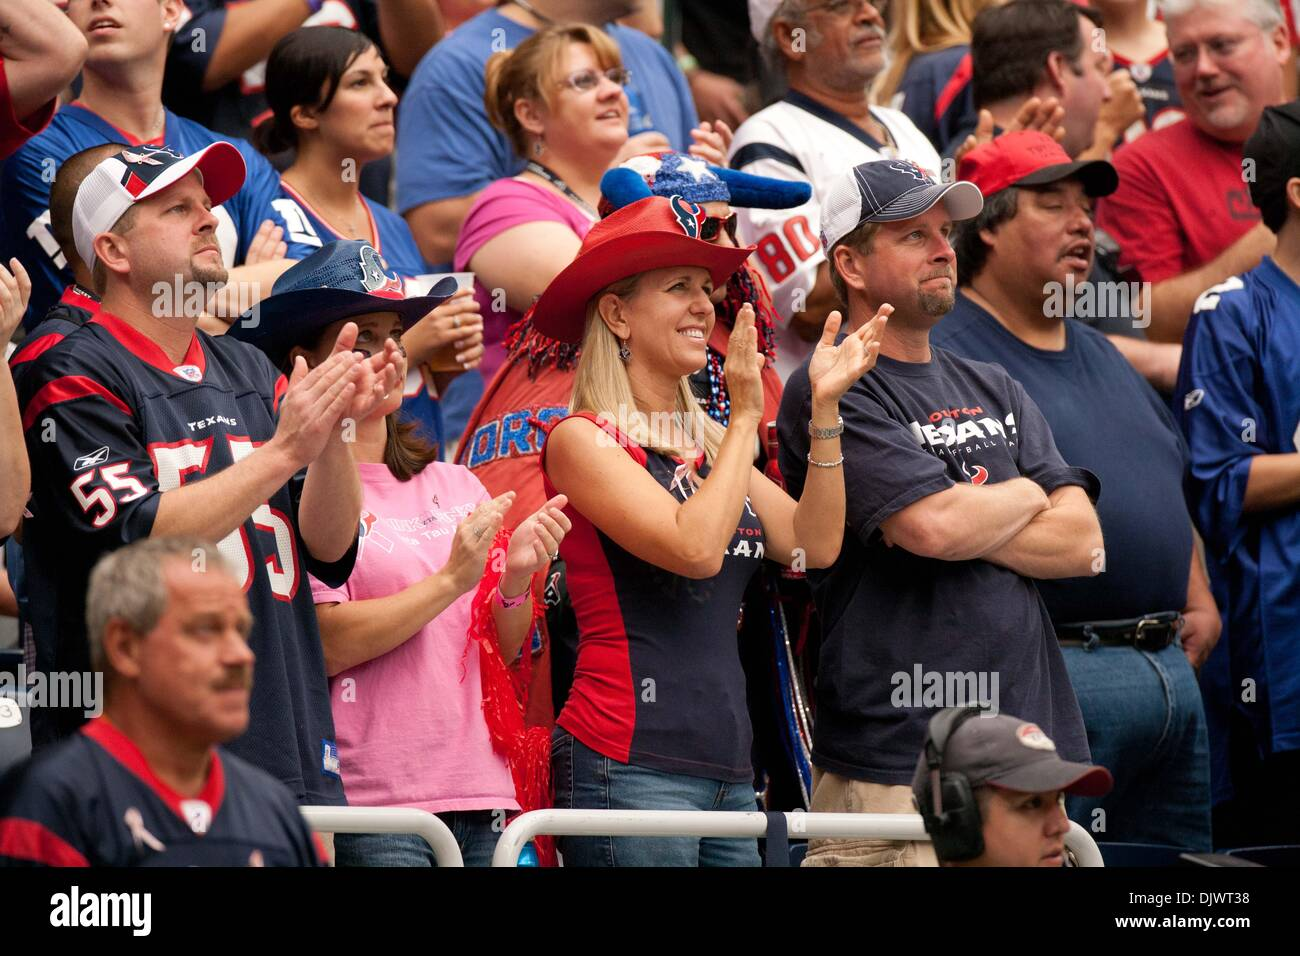 Oct. 10, 2010 - Houston, Texas, U.S - Houston Texans fan clapping for her home team. NY Giants defeated the Houston Texans 34-10 at Reliant Stadium. (Credit Image: © Juan DeLeon/Southcreek Global/ZUMAPRESS.com) - Stock Image